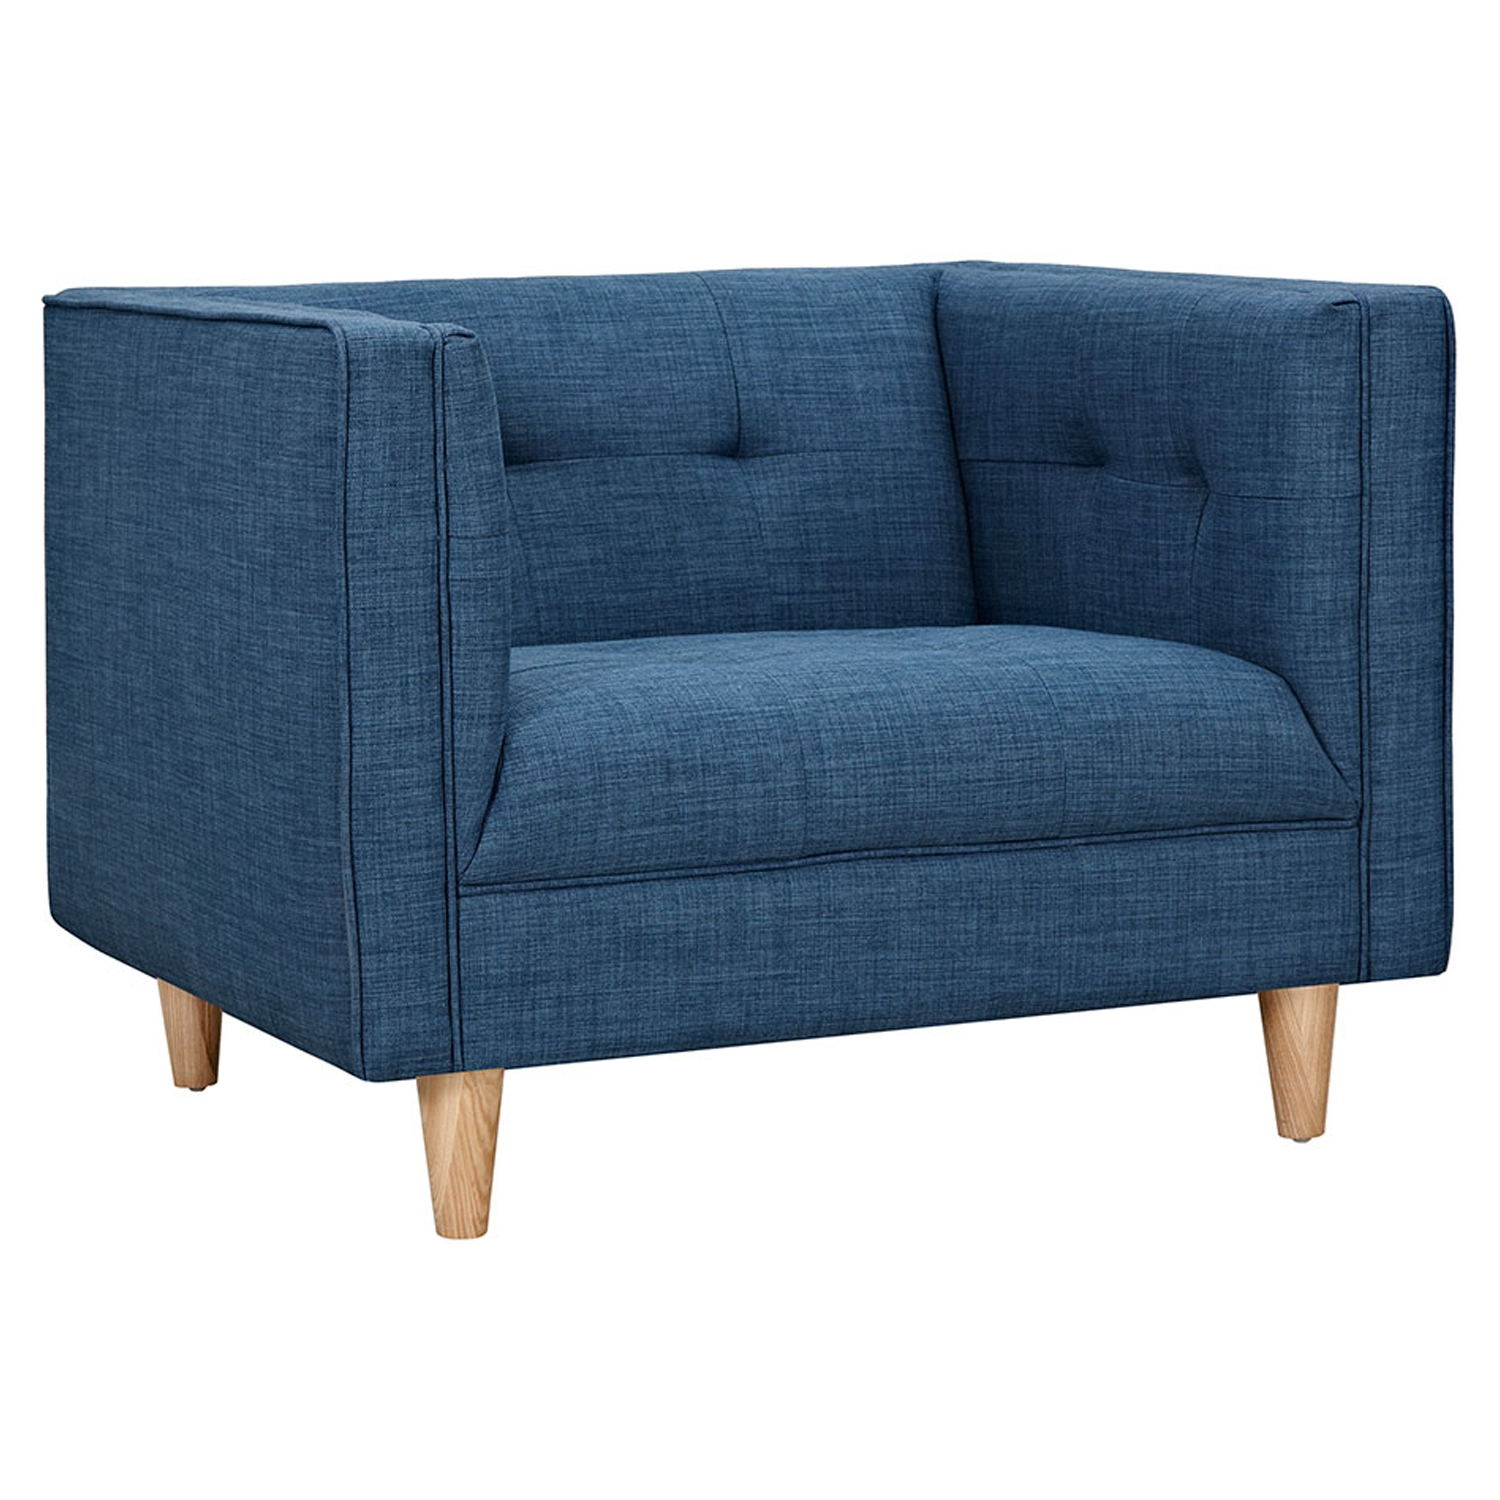 Kaja Armchair - Stone Blue, Tufted